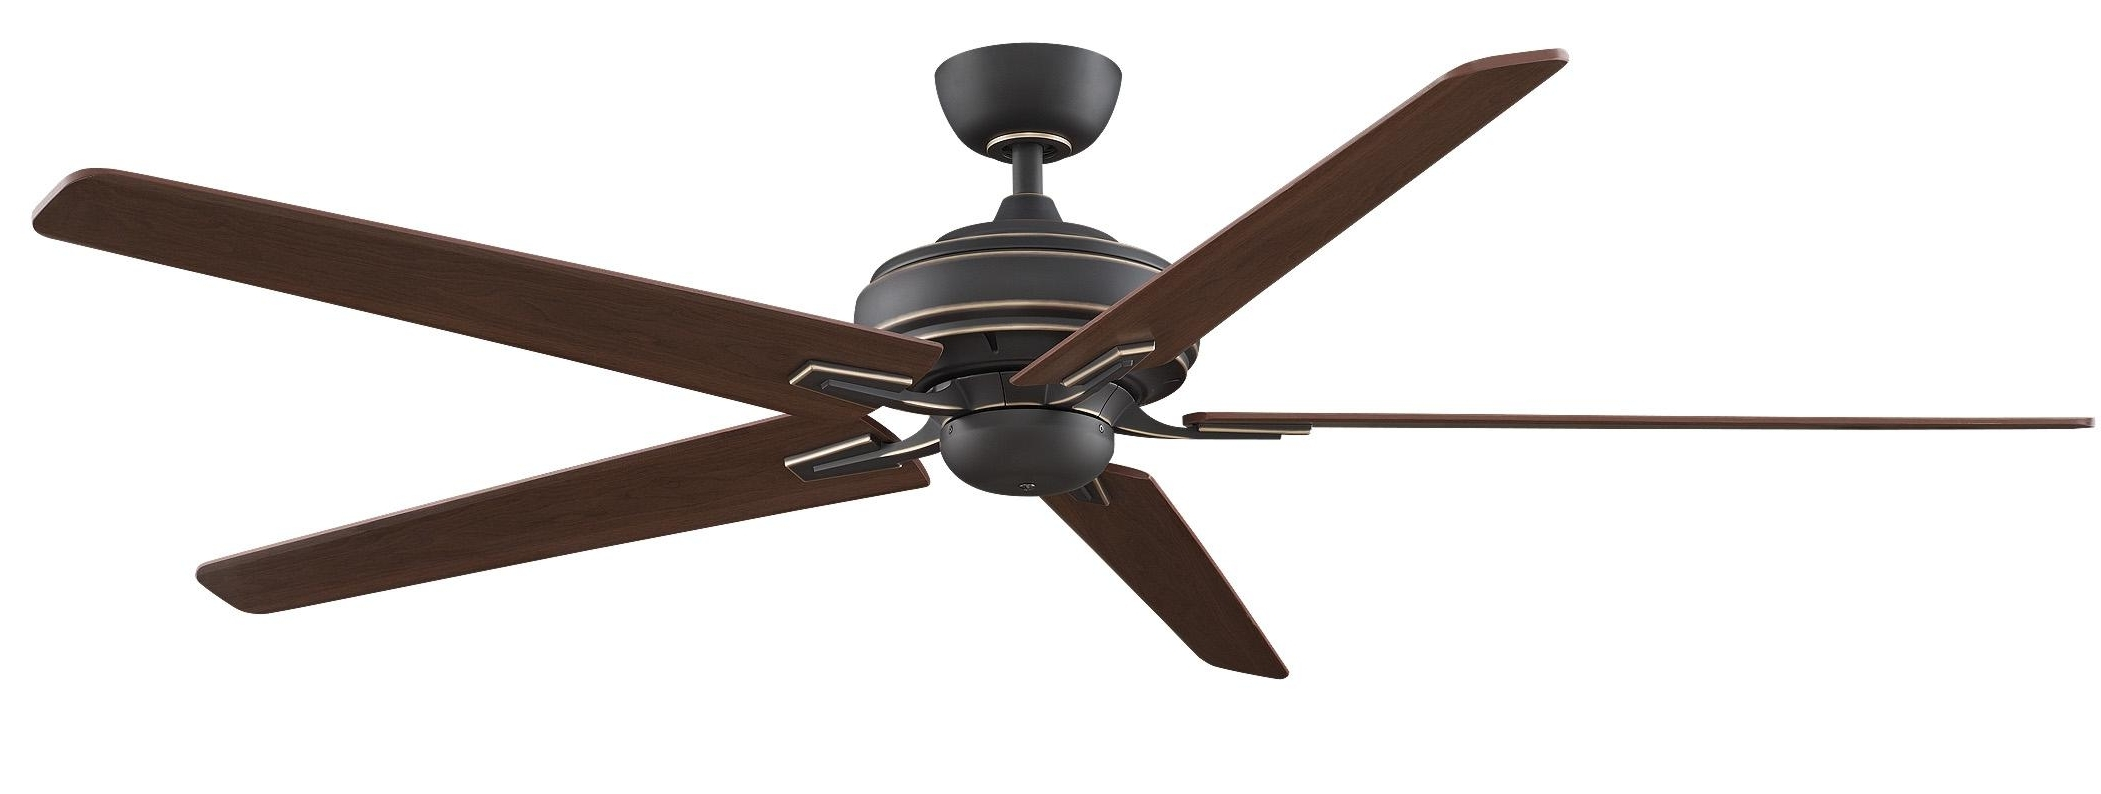 Brown Outdoor Ceiling Fan With Light With 2019 Inch Outdoor Ceiling Fan With 60 Ceiling Fan With Light (View 14 of 20)